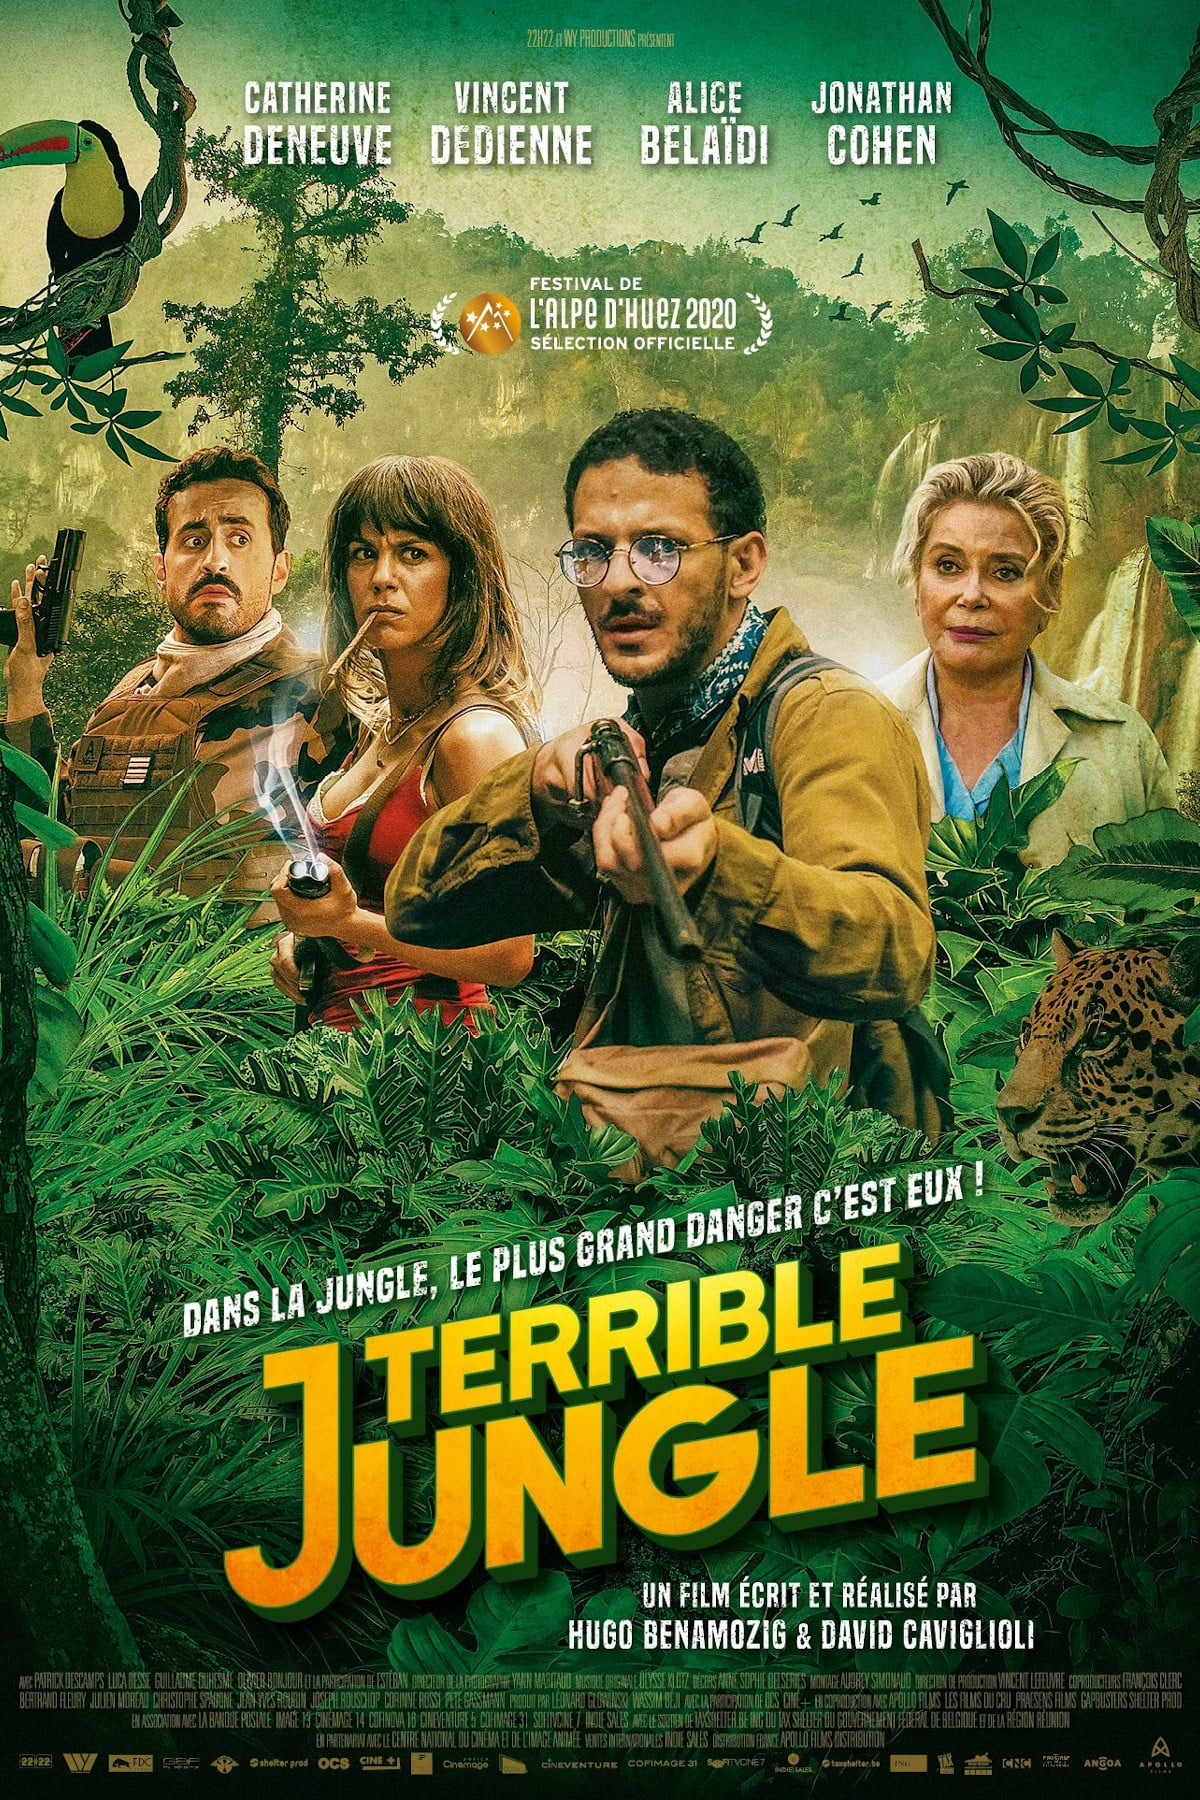 voir film Terrible jungle streaming